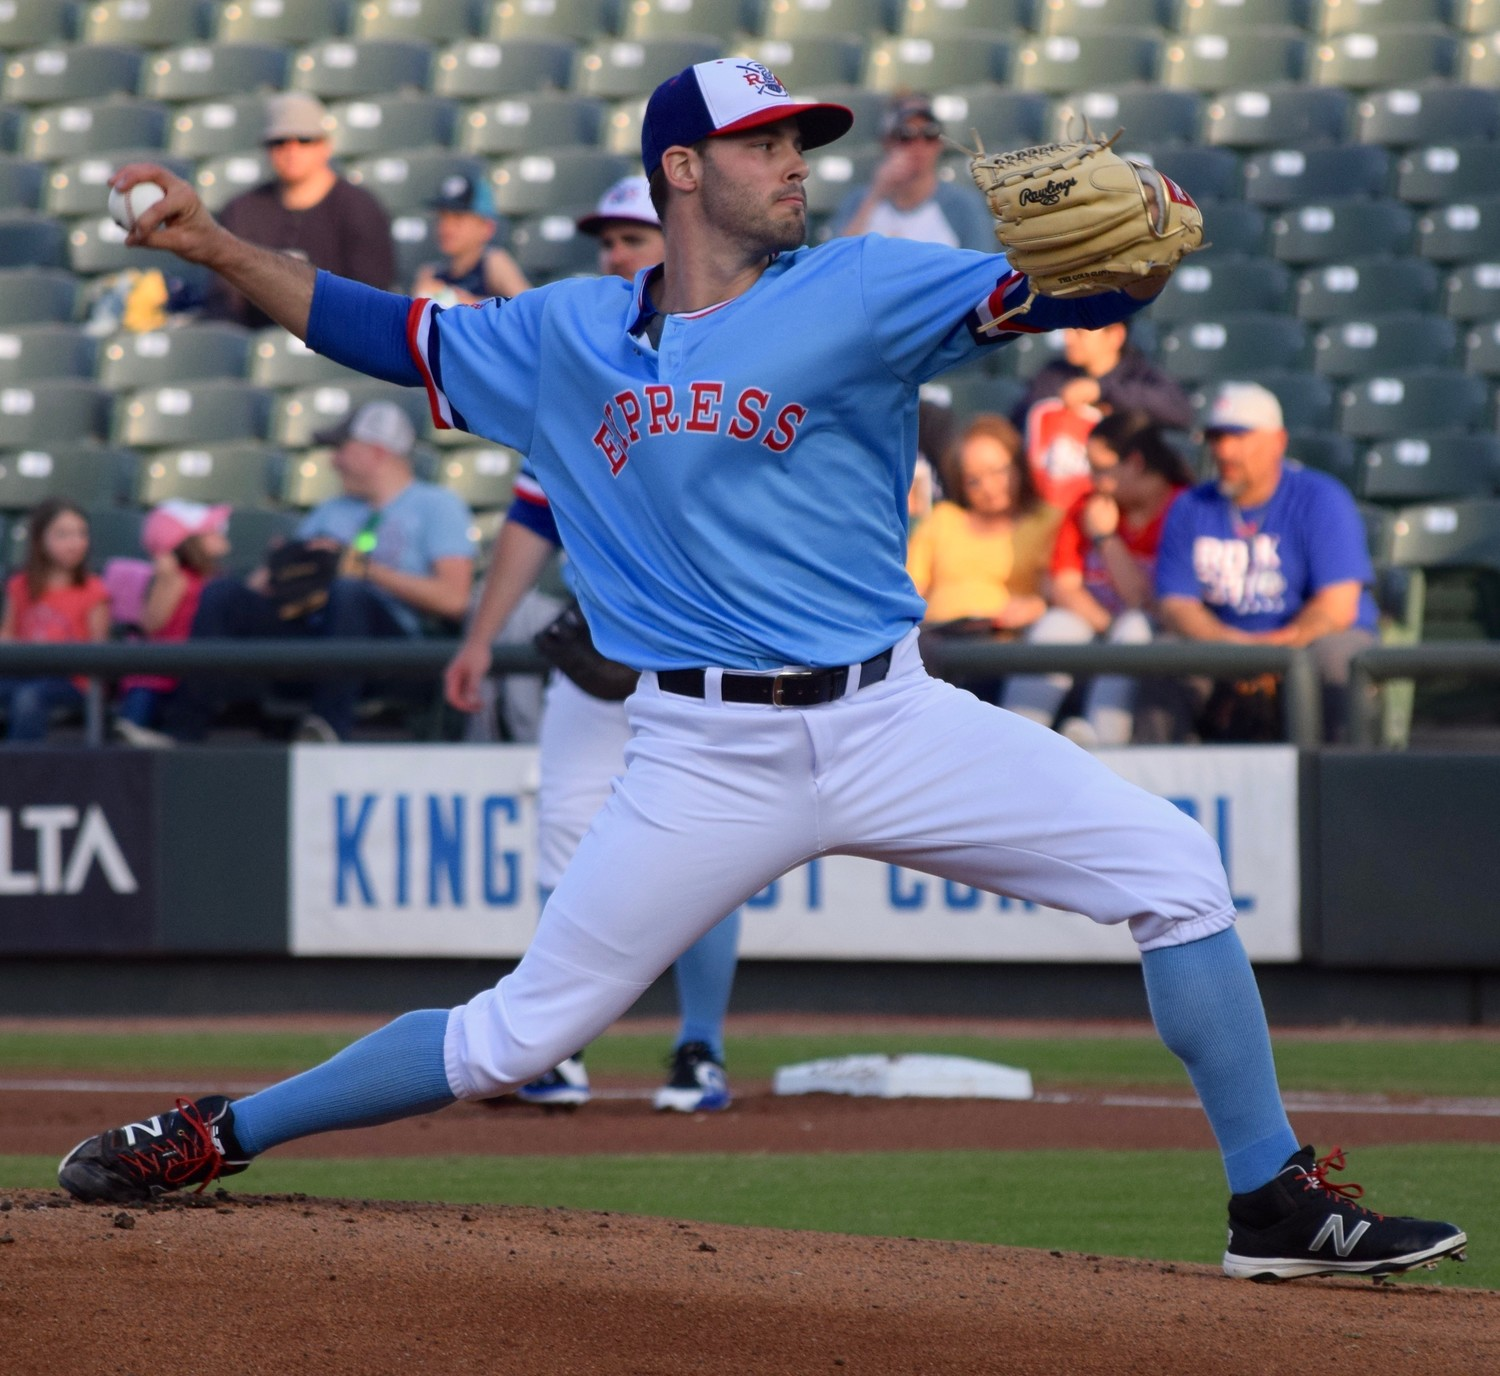 Round Rock starter David Ledbetter went 6.1 innings and allowed striking out four and allowing one run on five hits Saturday in a 6-1 win against the Colorado Springs Sky Sox.